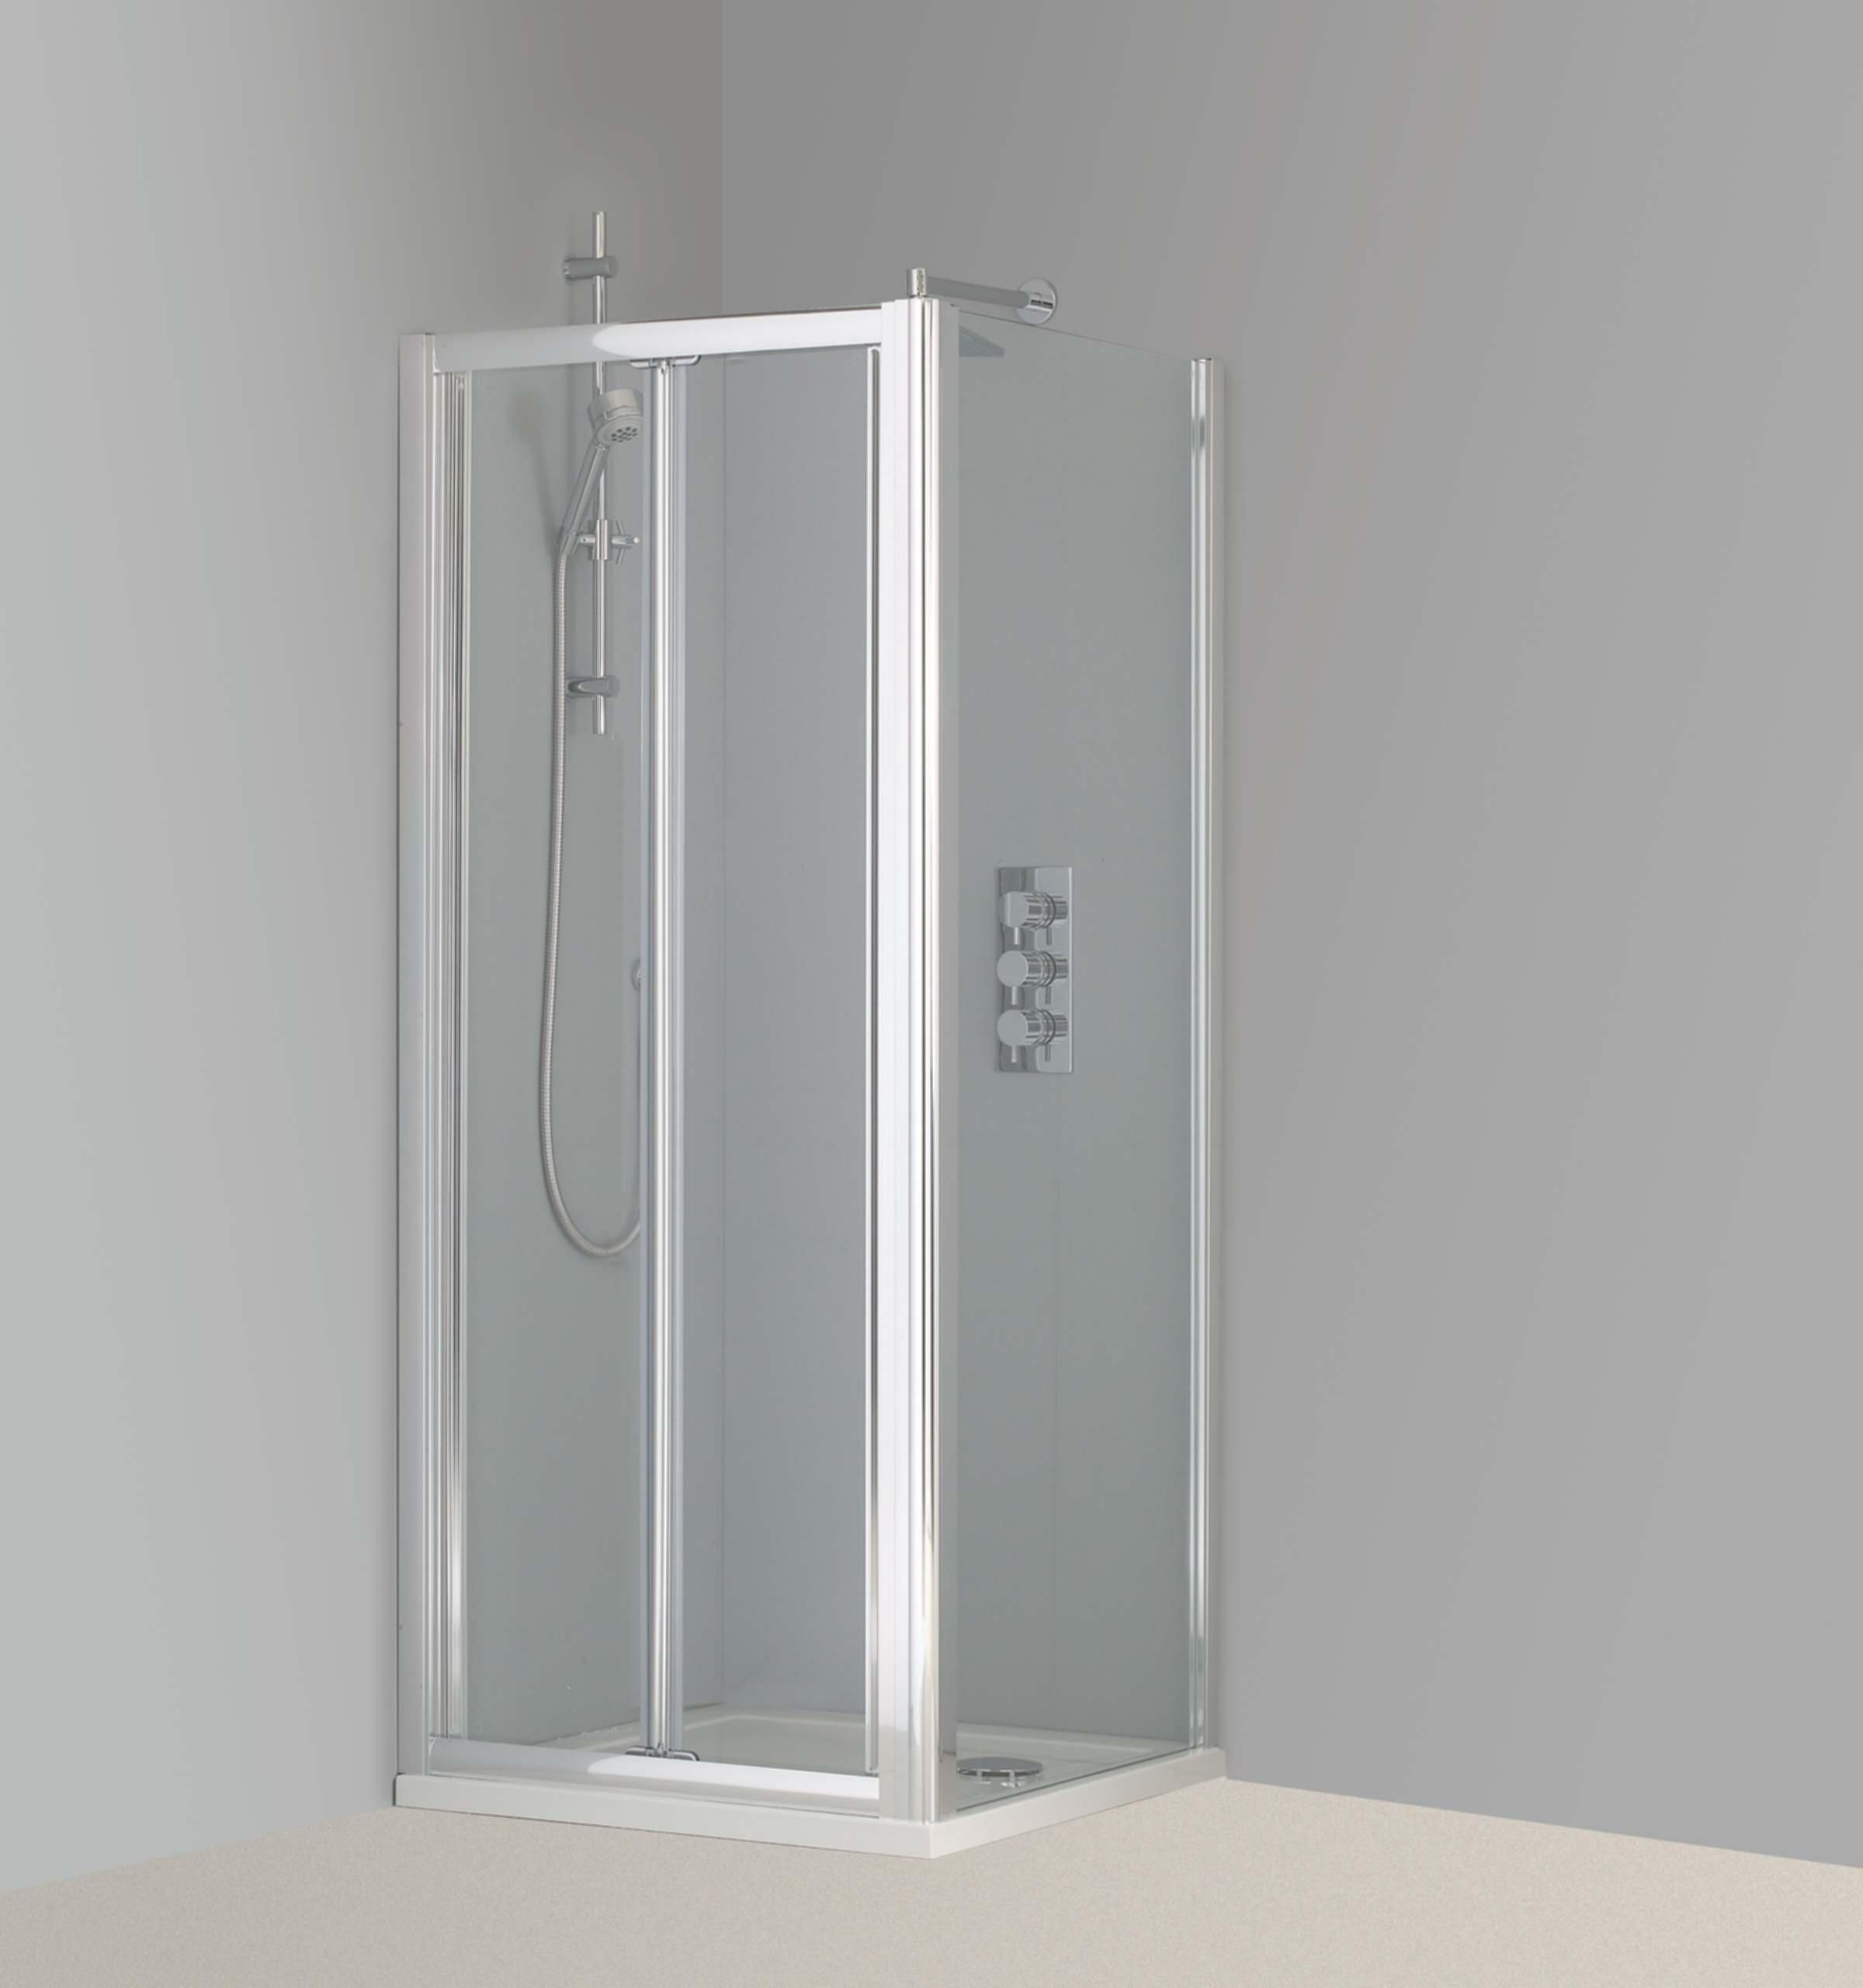 Bathroom Door Plastic Bifold Shower Doors Plastic Folding Shower ...